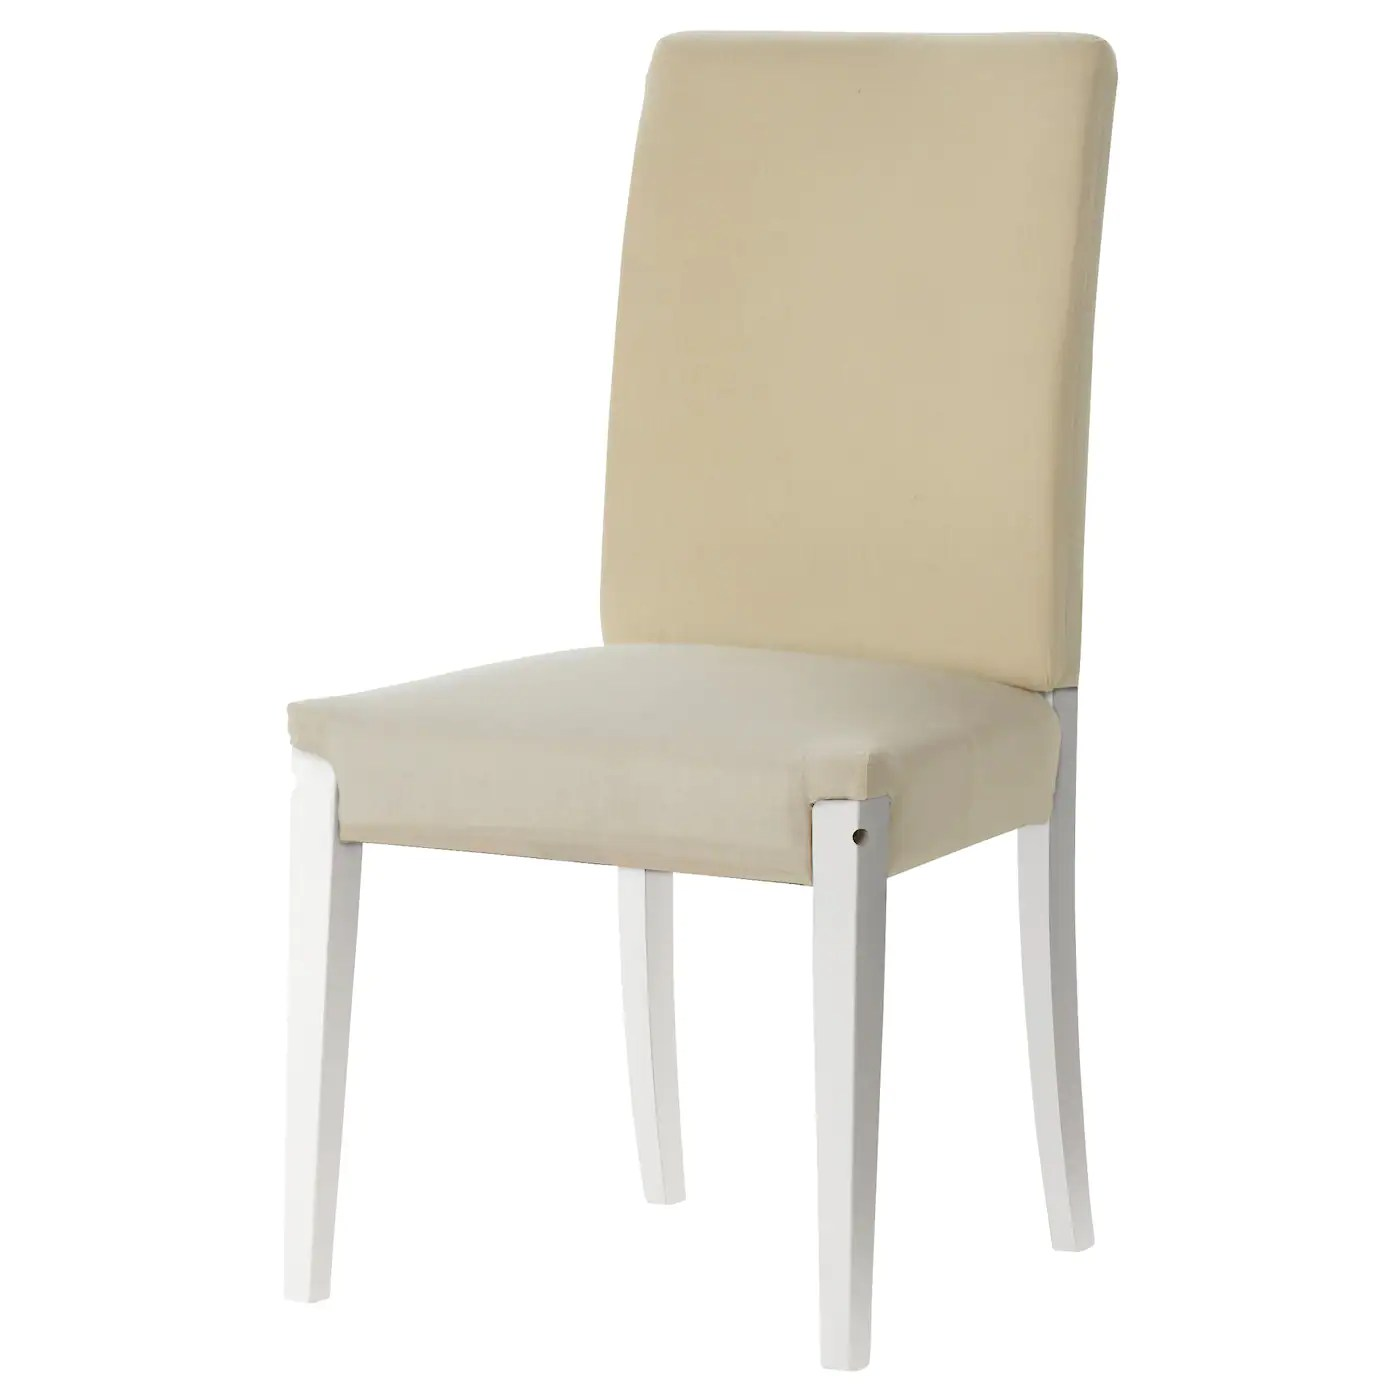 white chair covers ikea walmart childrens table and chairs henriksdal cover gräsbo